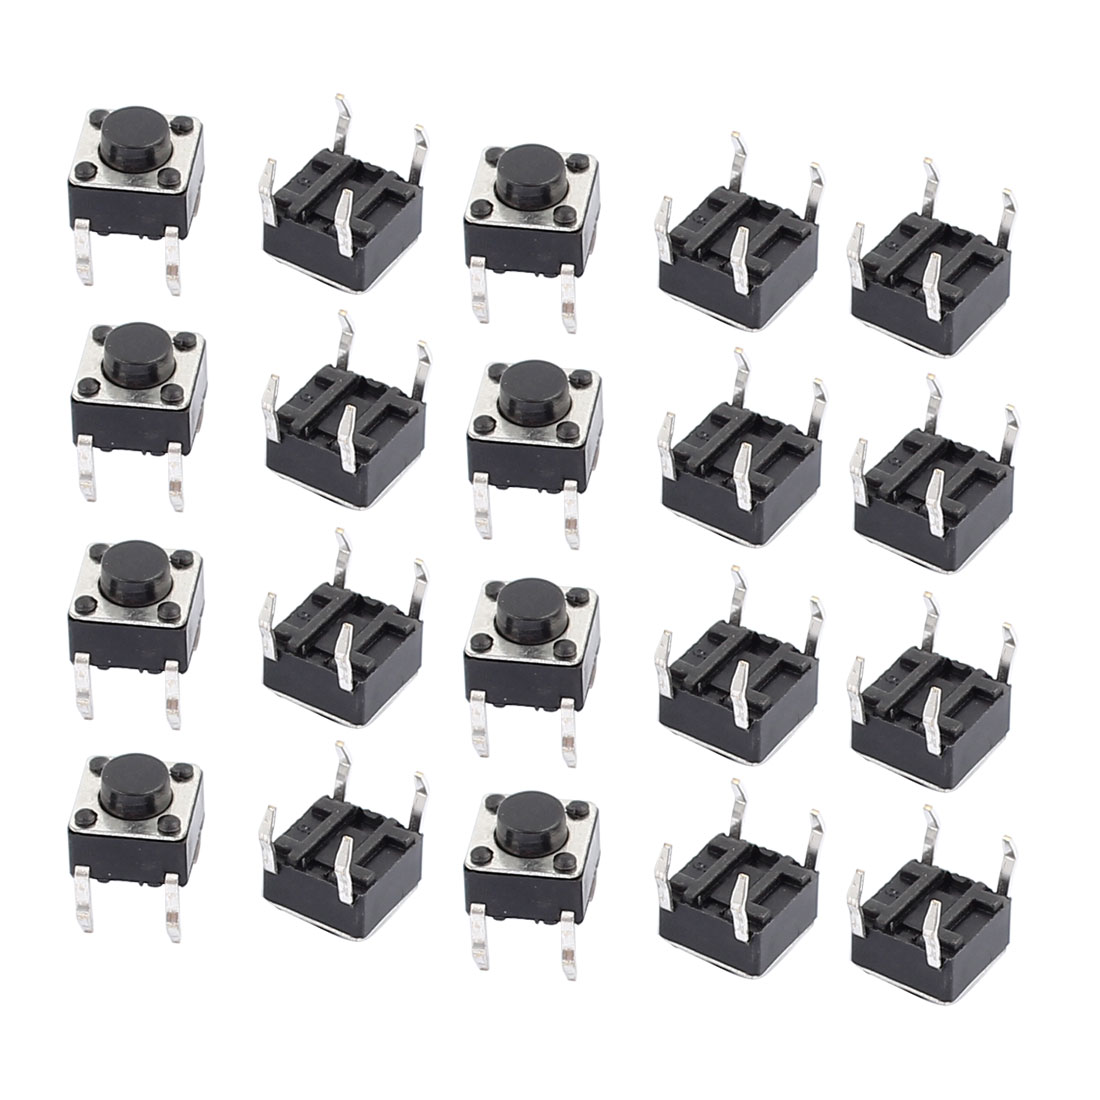 20 Pcs 6mmx6mmx5mm Panel PCB Momentary Tactile Tact Push Button Switch 4 Terminals